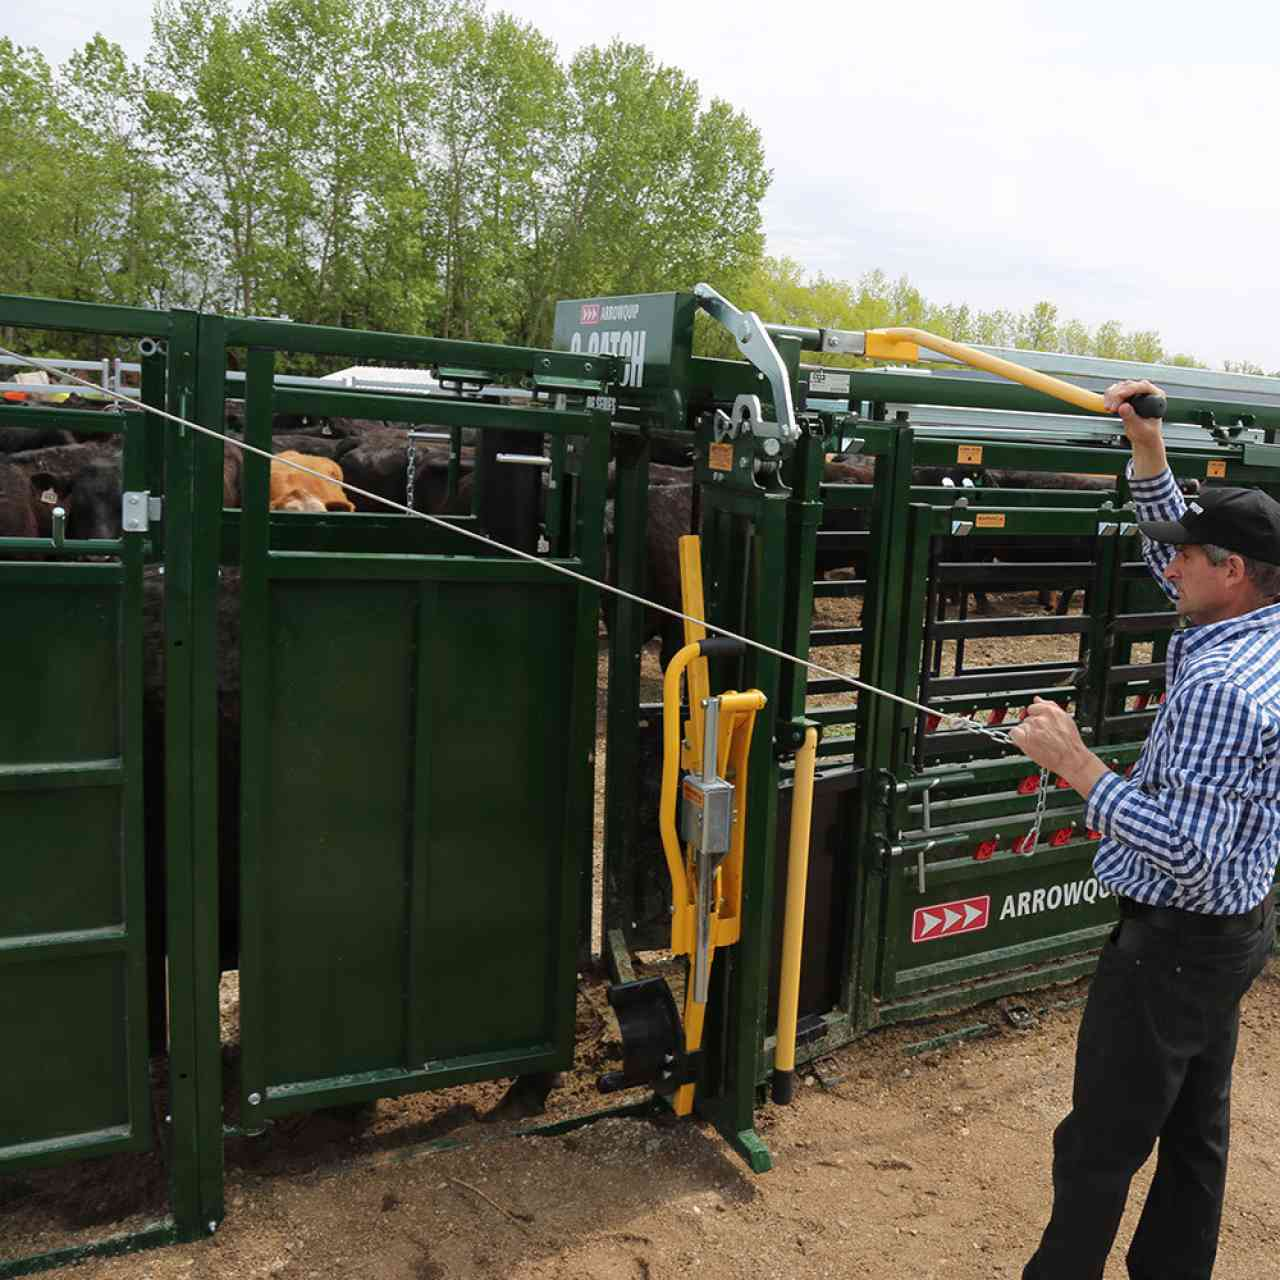 Rancher sorting livestock with post-chute cattle drafting gates